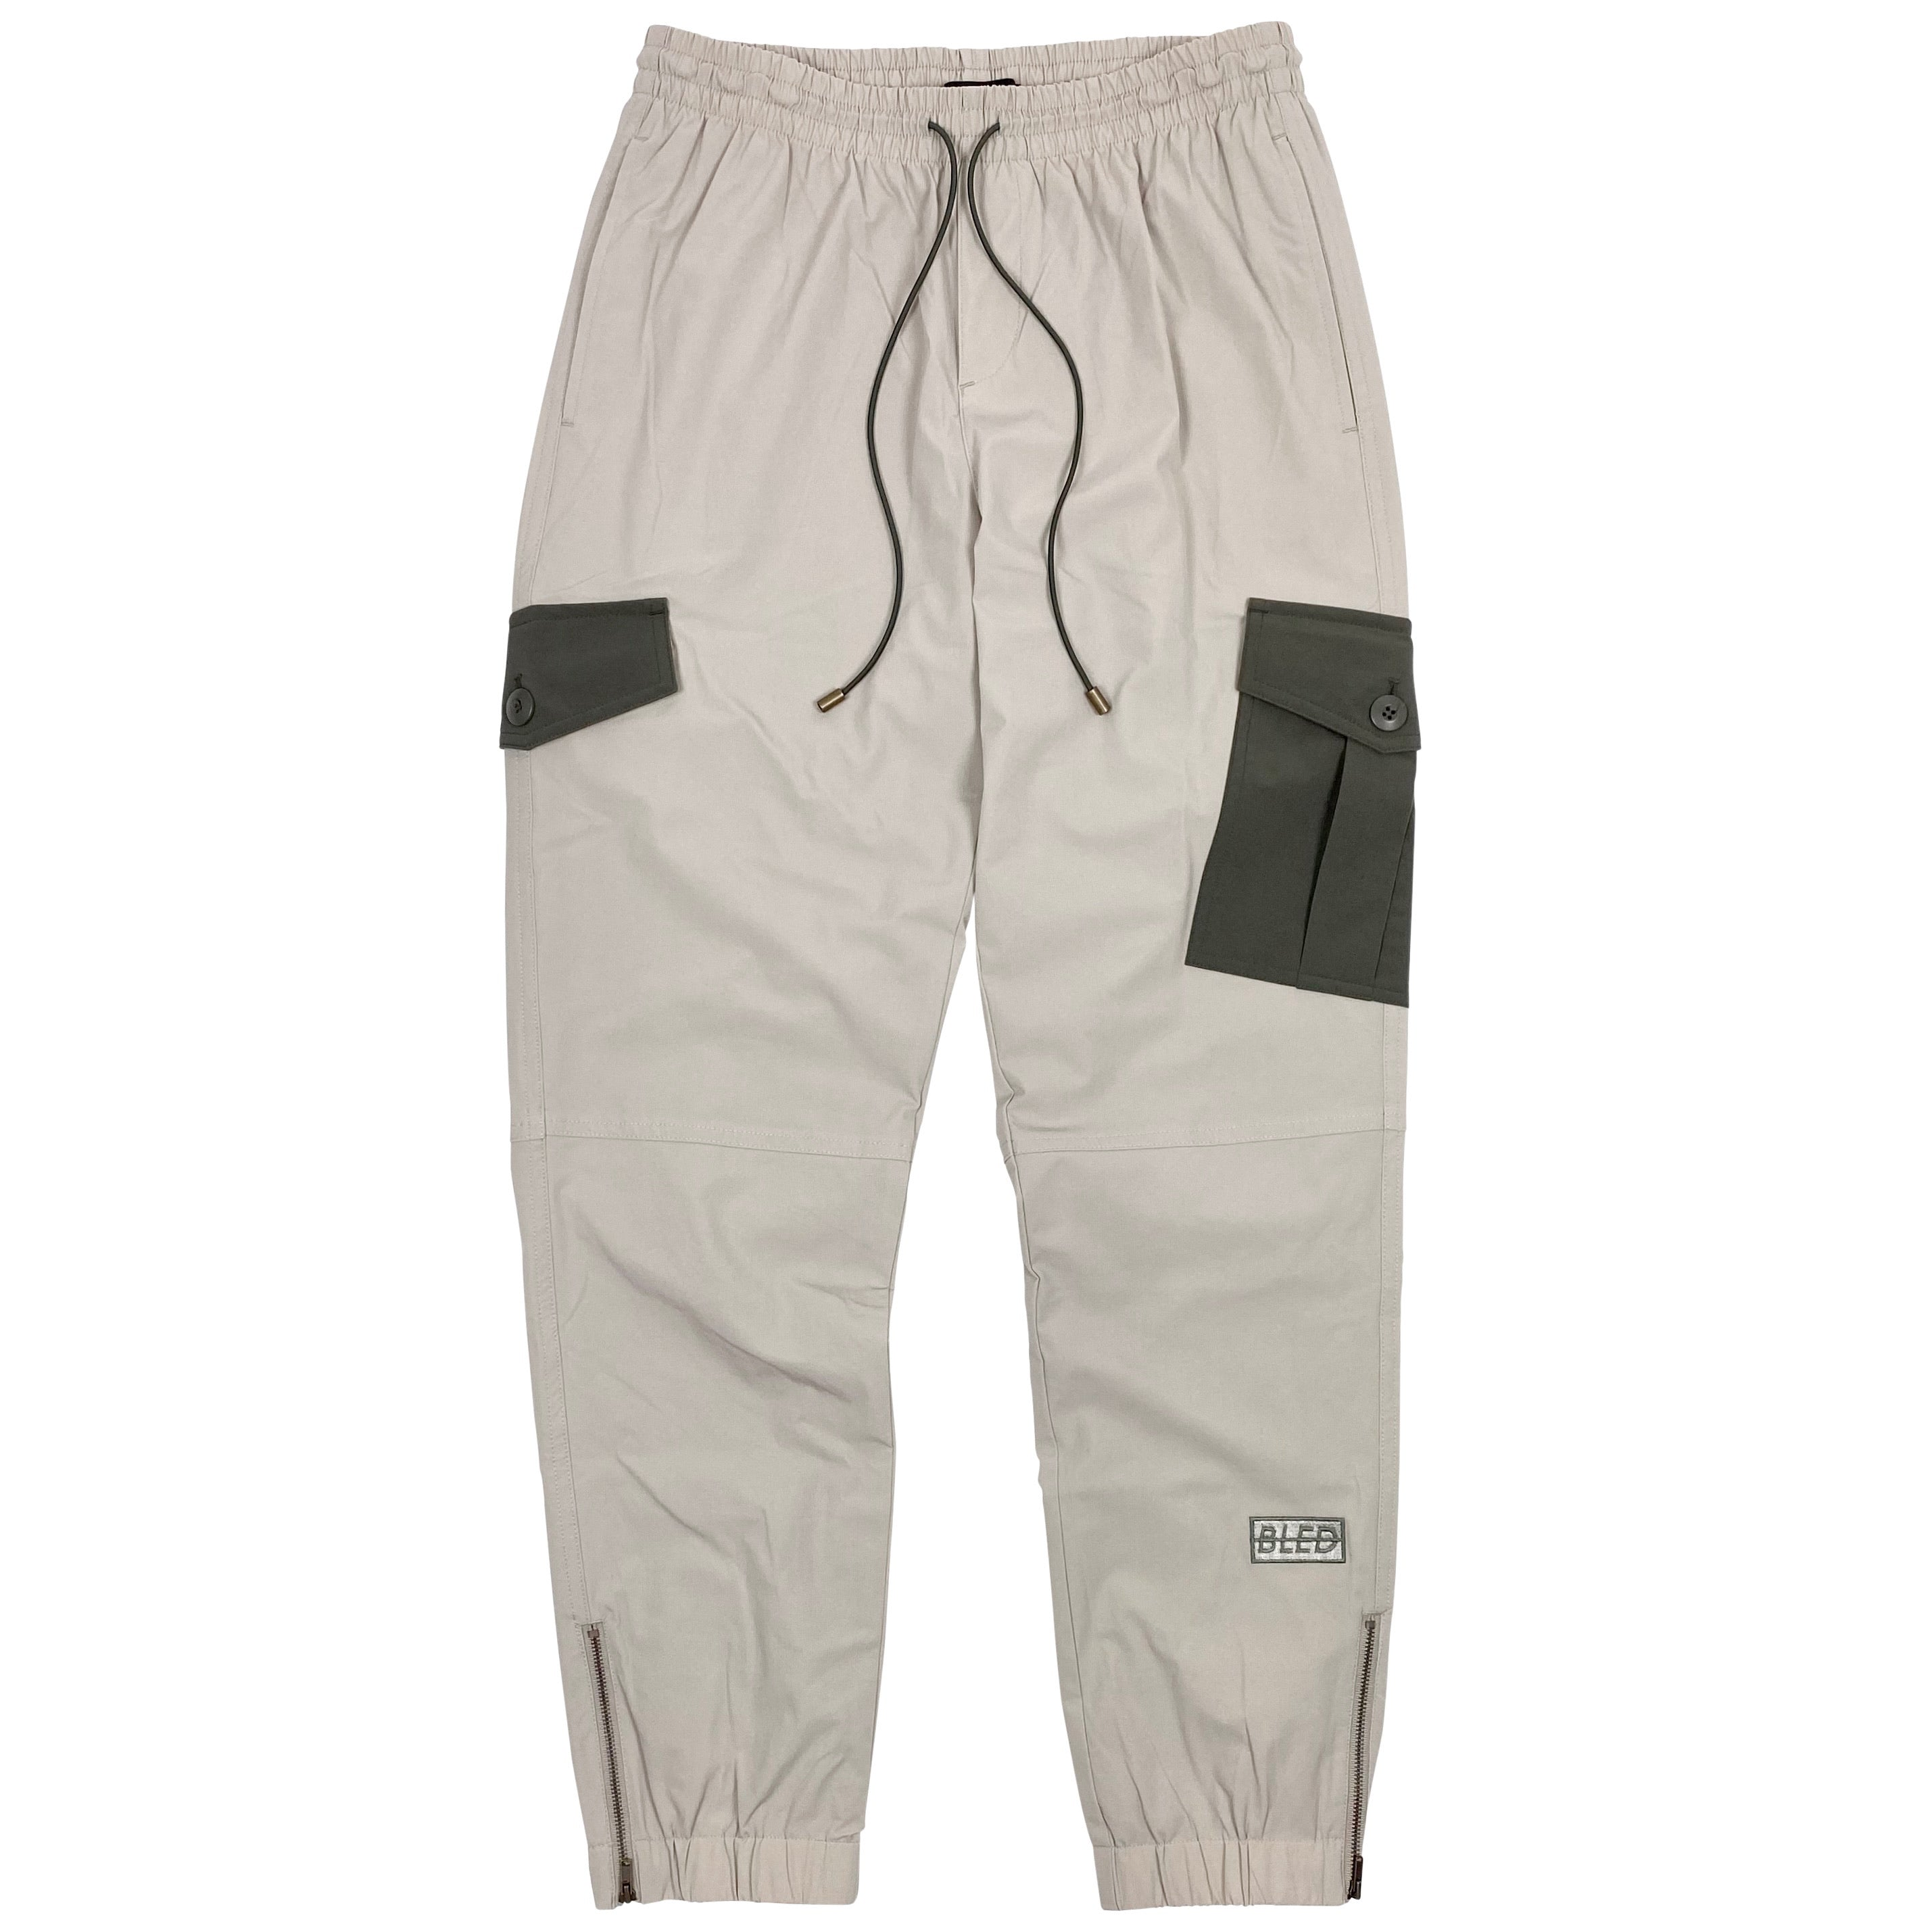 BLED-Clothing-Cargo Pant- Track Pant-Tan-Los Angeles-BLED LA-Trousers-Nylon Pant